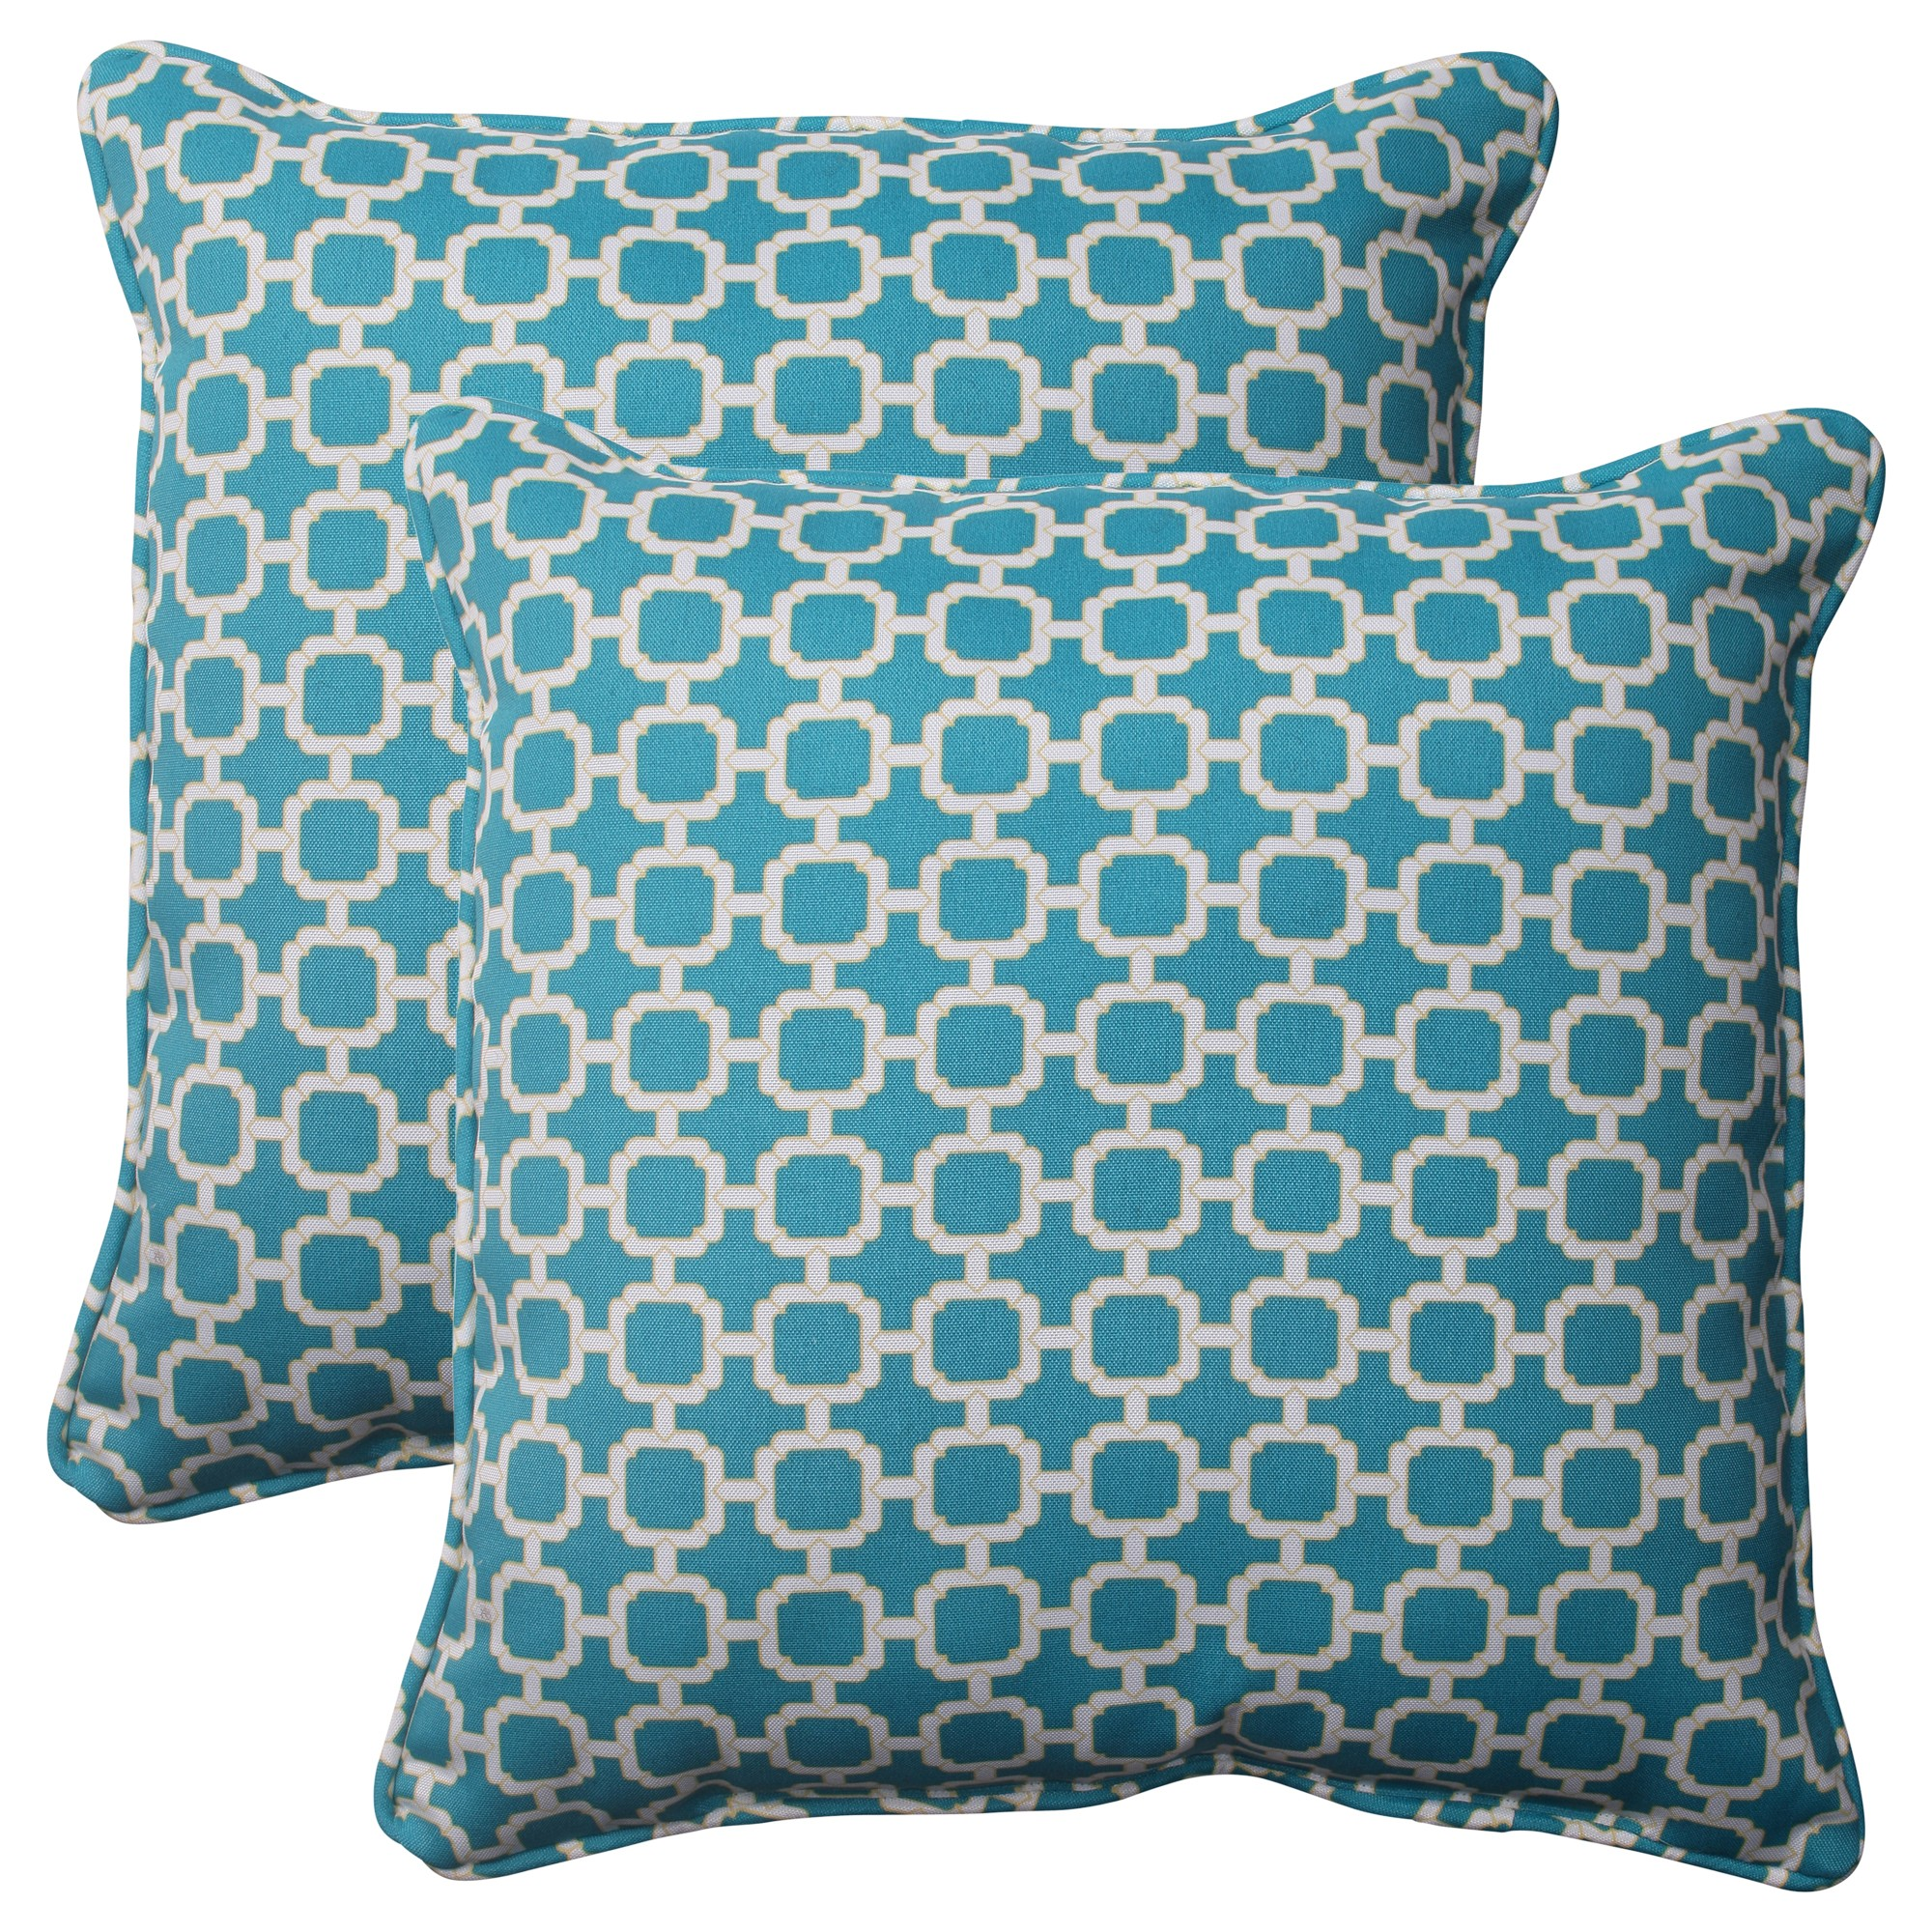 Adorable Cushions Teal Throw Pillows For Queen Bed Size King Bedsize Or Sectional Sofa Also Wicker Rattan Chairs For Living Room Accesories Parts Furniture Ideas